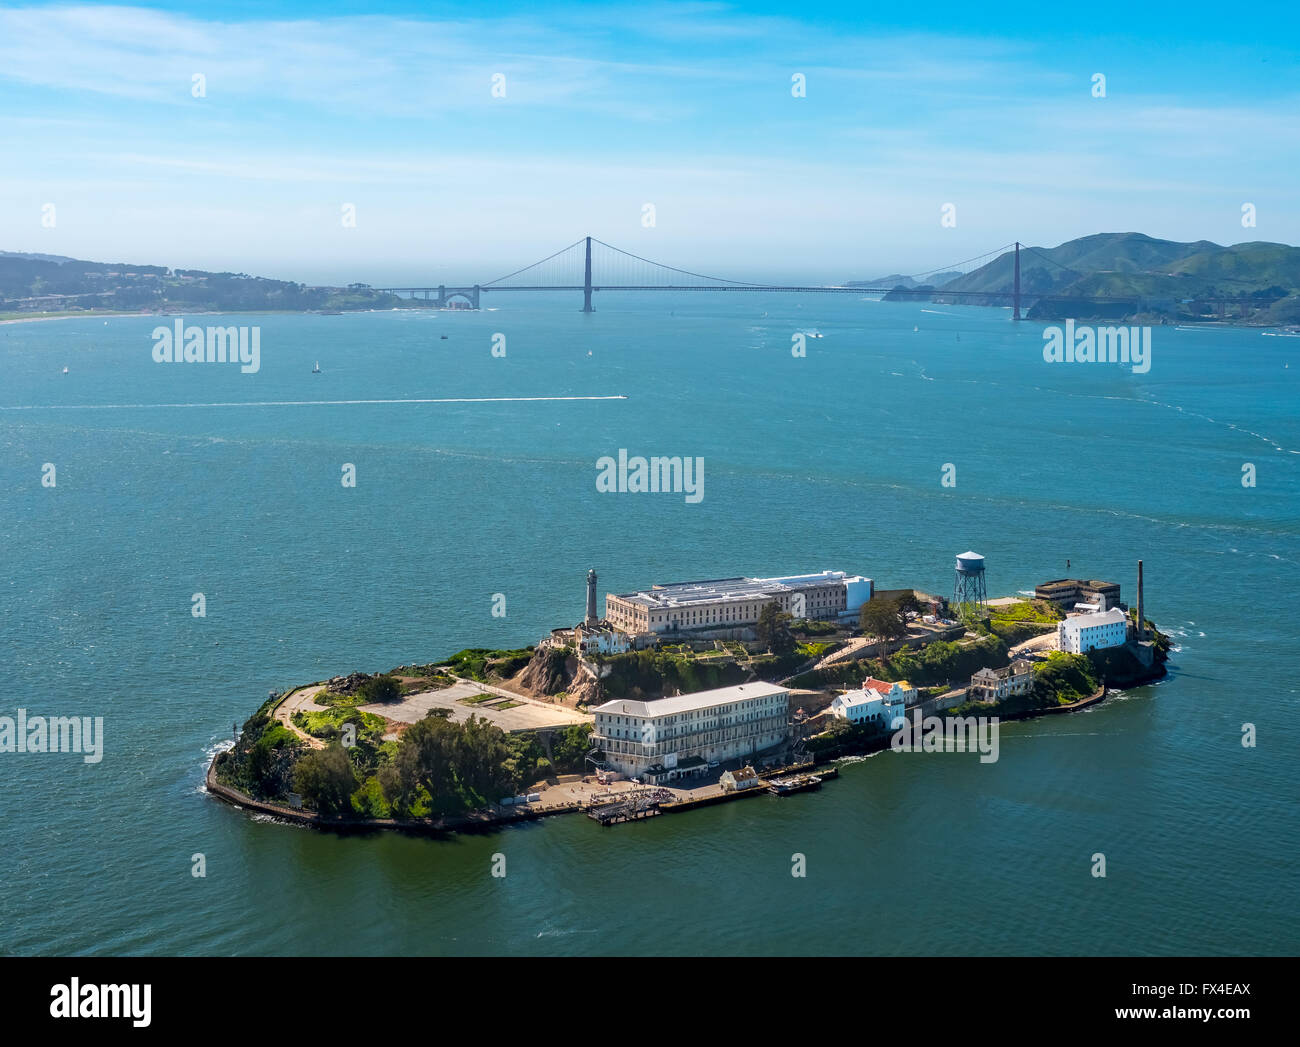 Aerial view, Alcatraz, Golden Gate Bridge in the background, Alcatraz Iceland with lighthouse in backlight, San - Stock Image